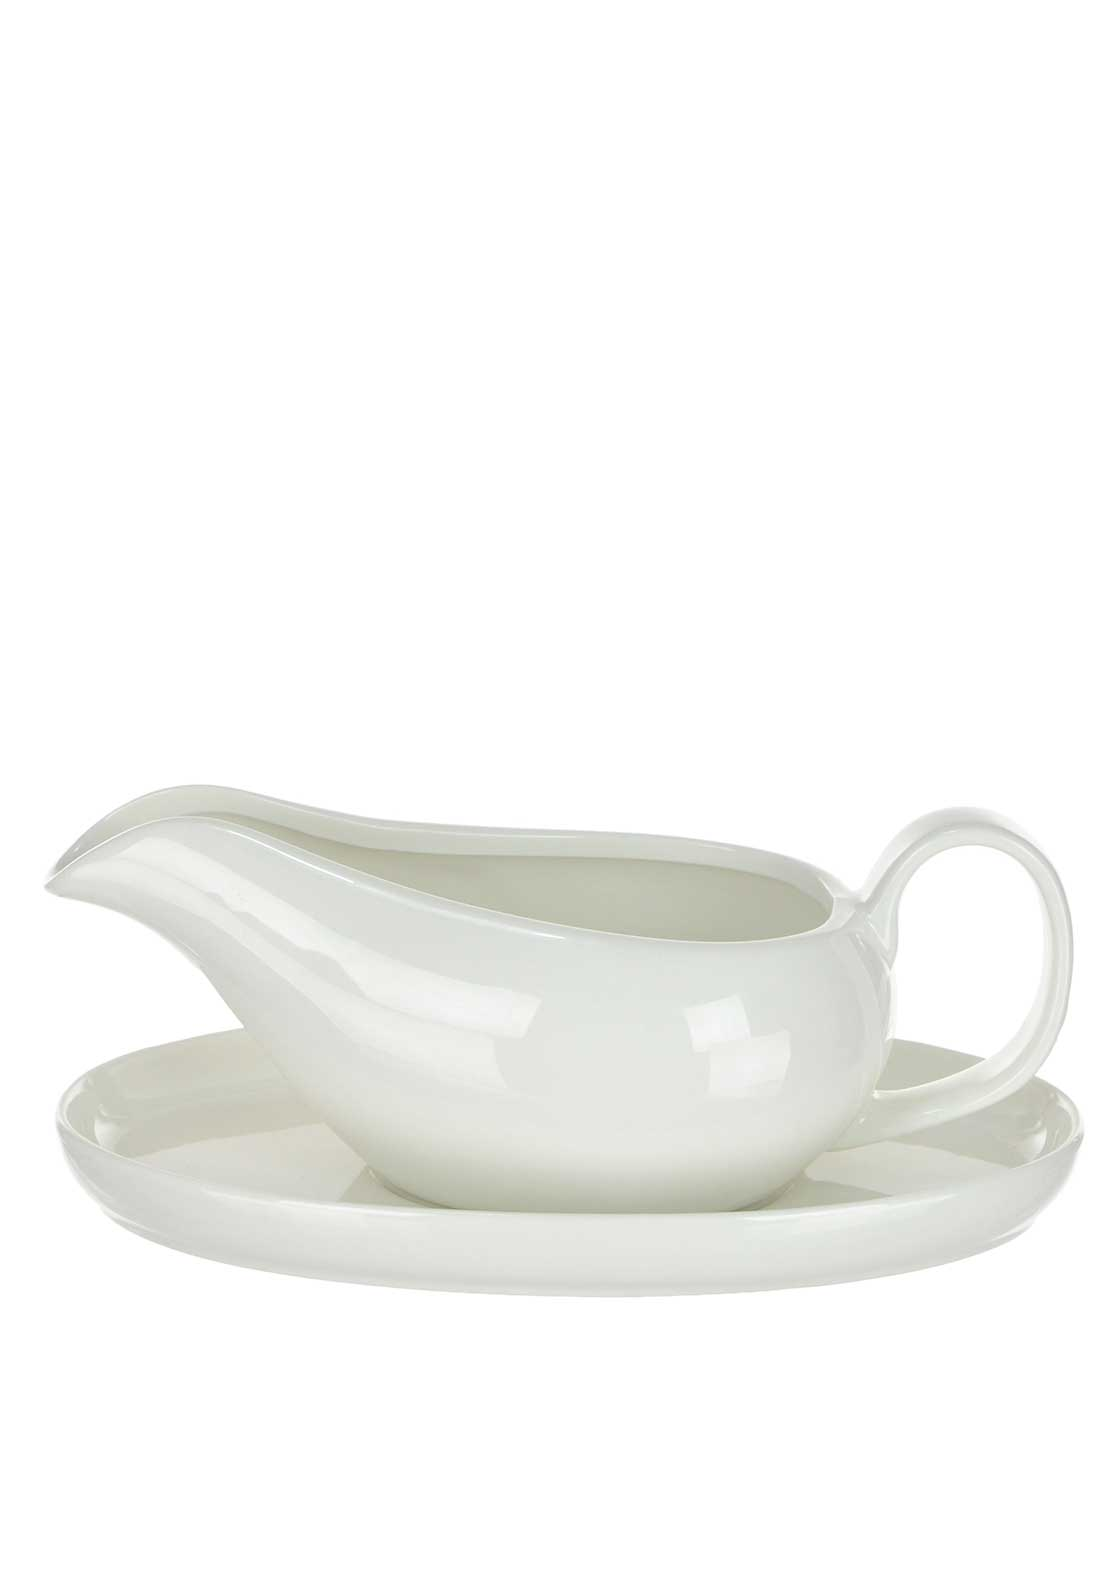 Slaneyside Pottery Gravy Boat on Stand, White